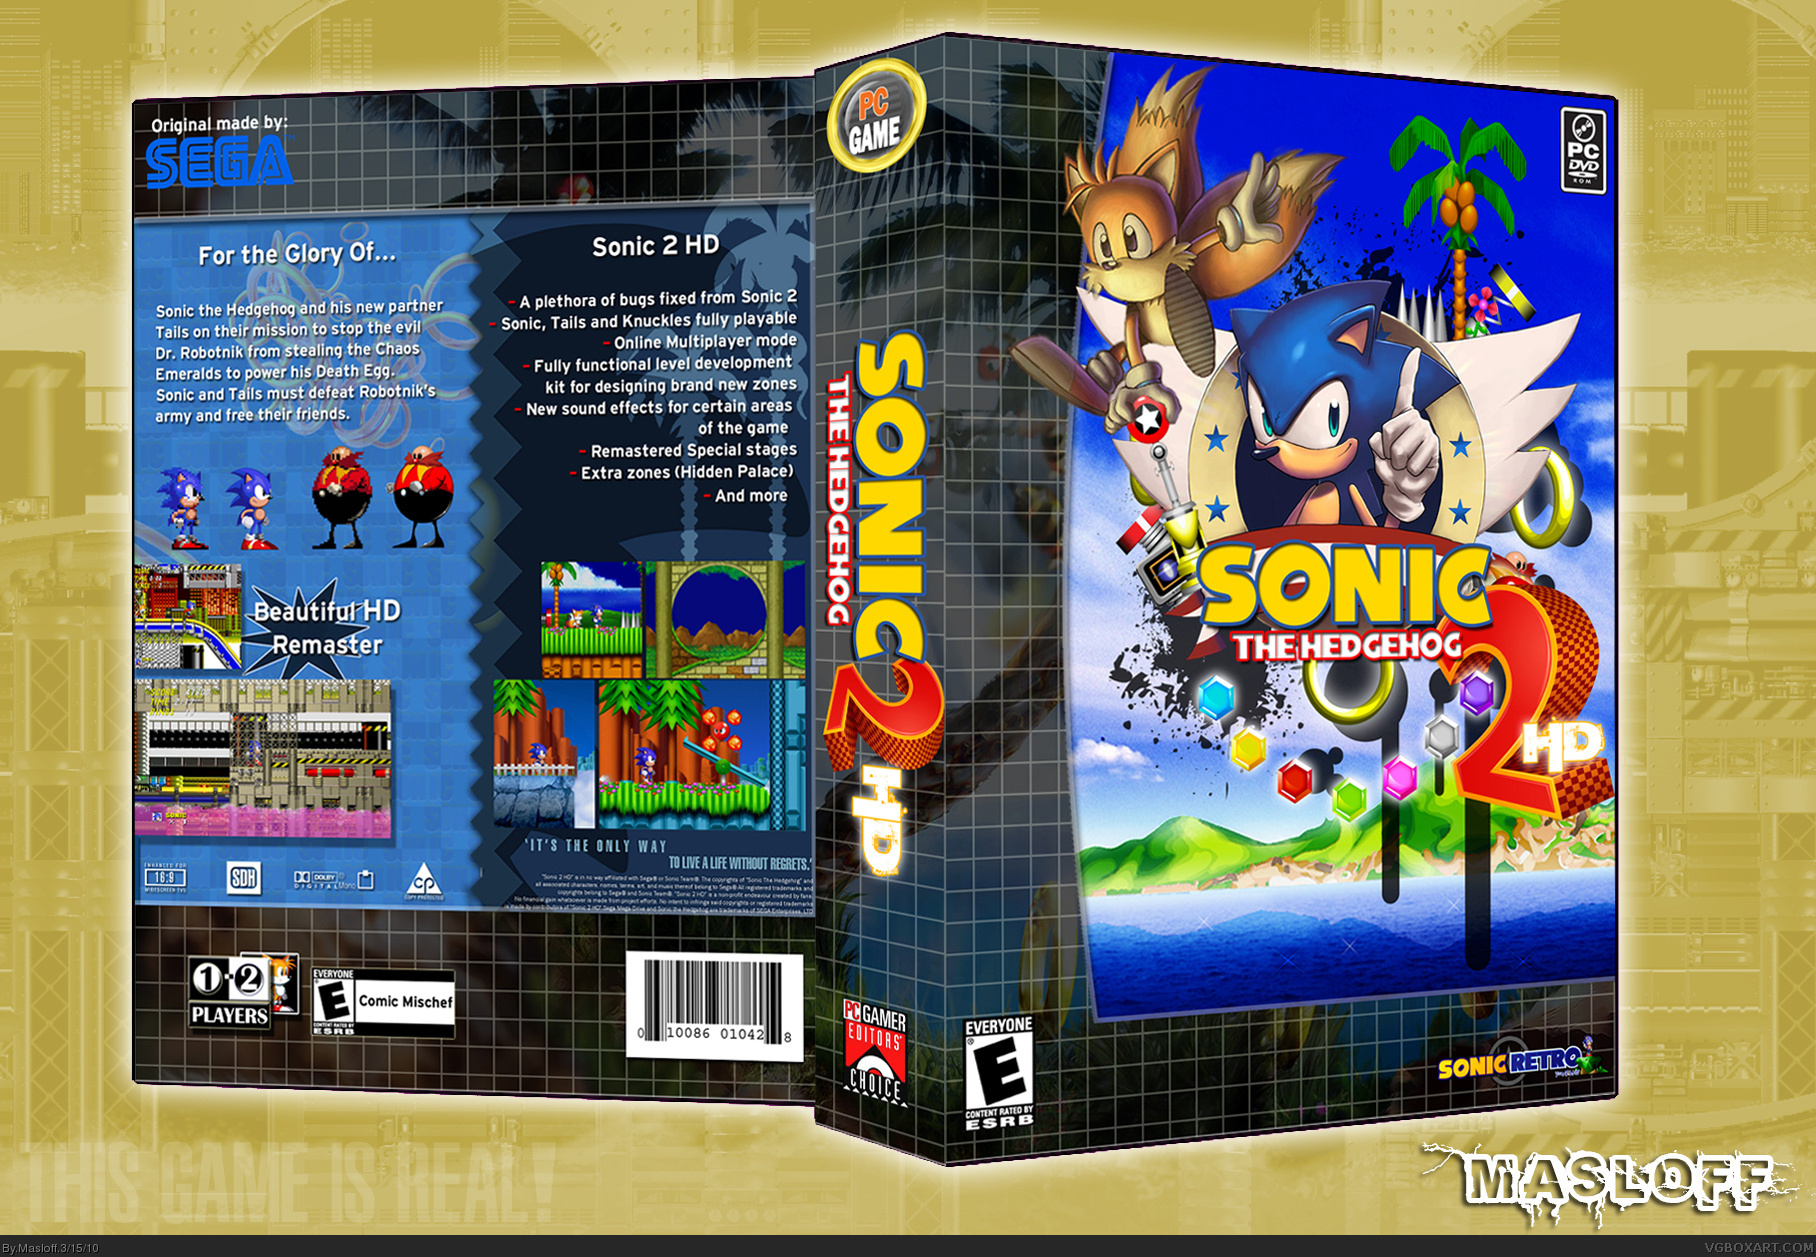 Sonic the Hedgehog 2: HD box cover